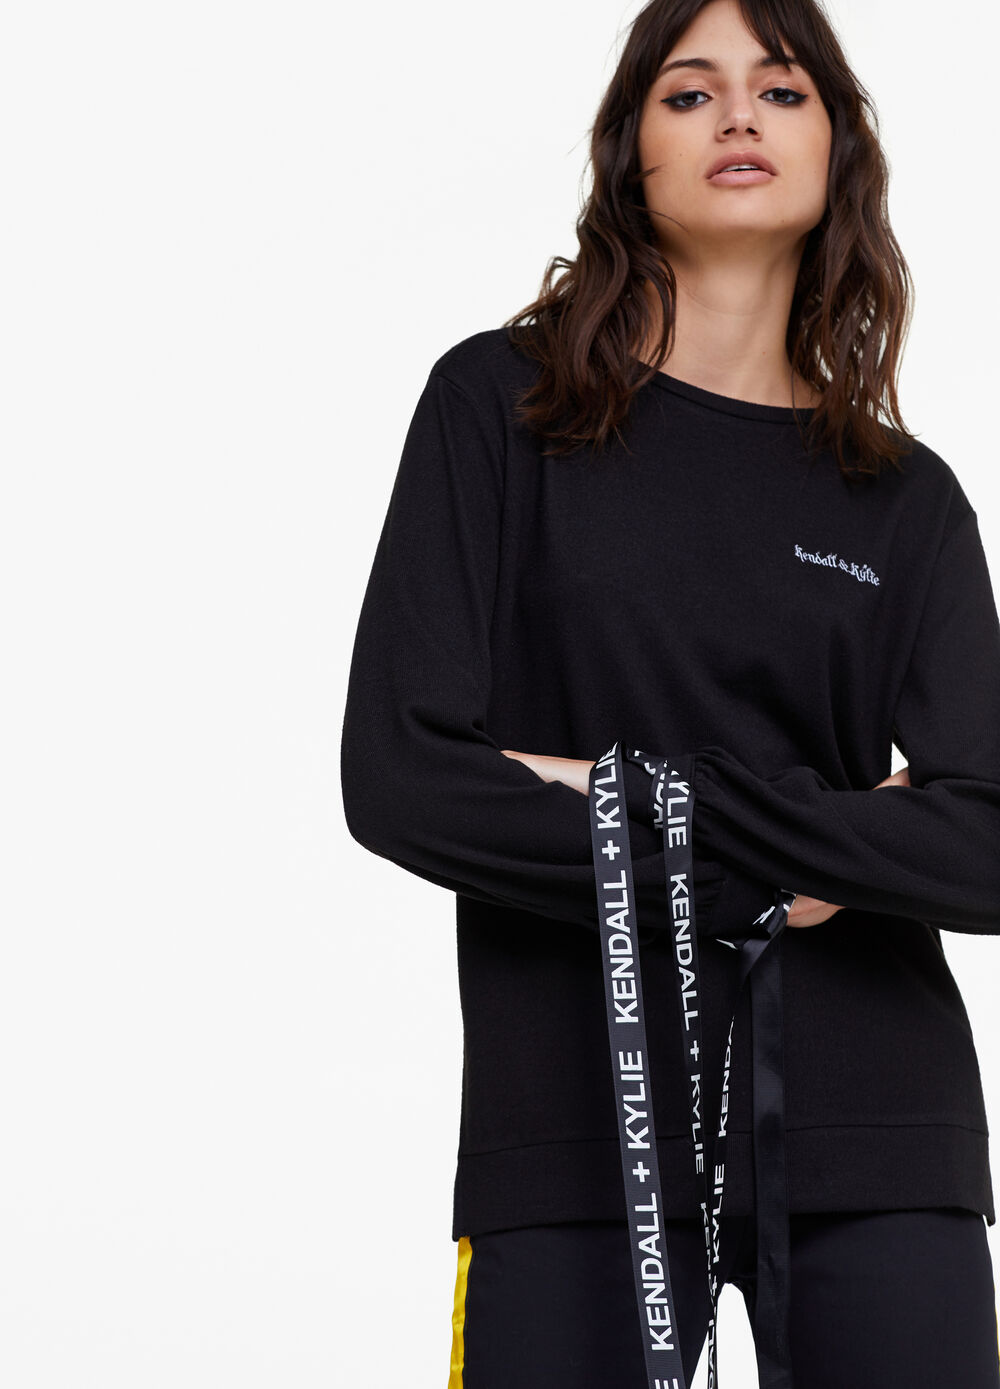 K+K for OVS stretch pullover